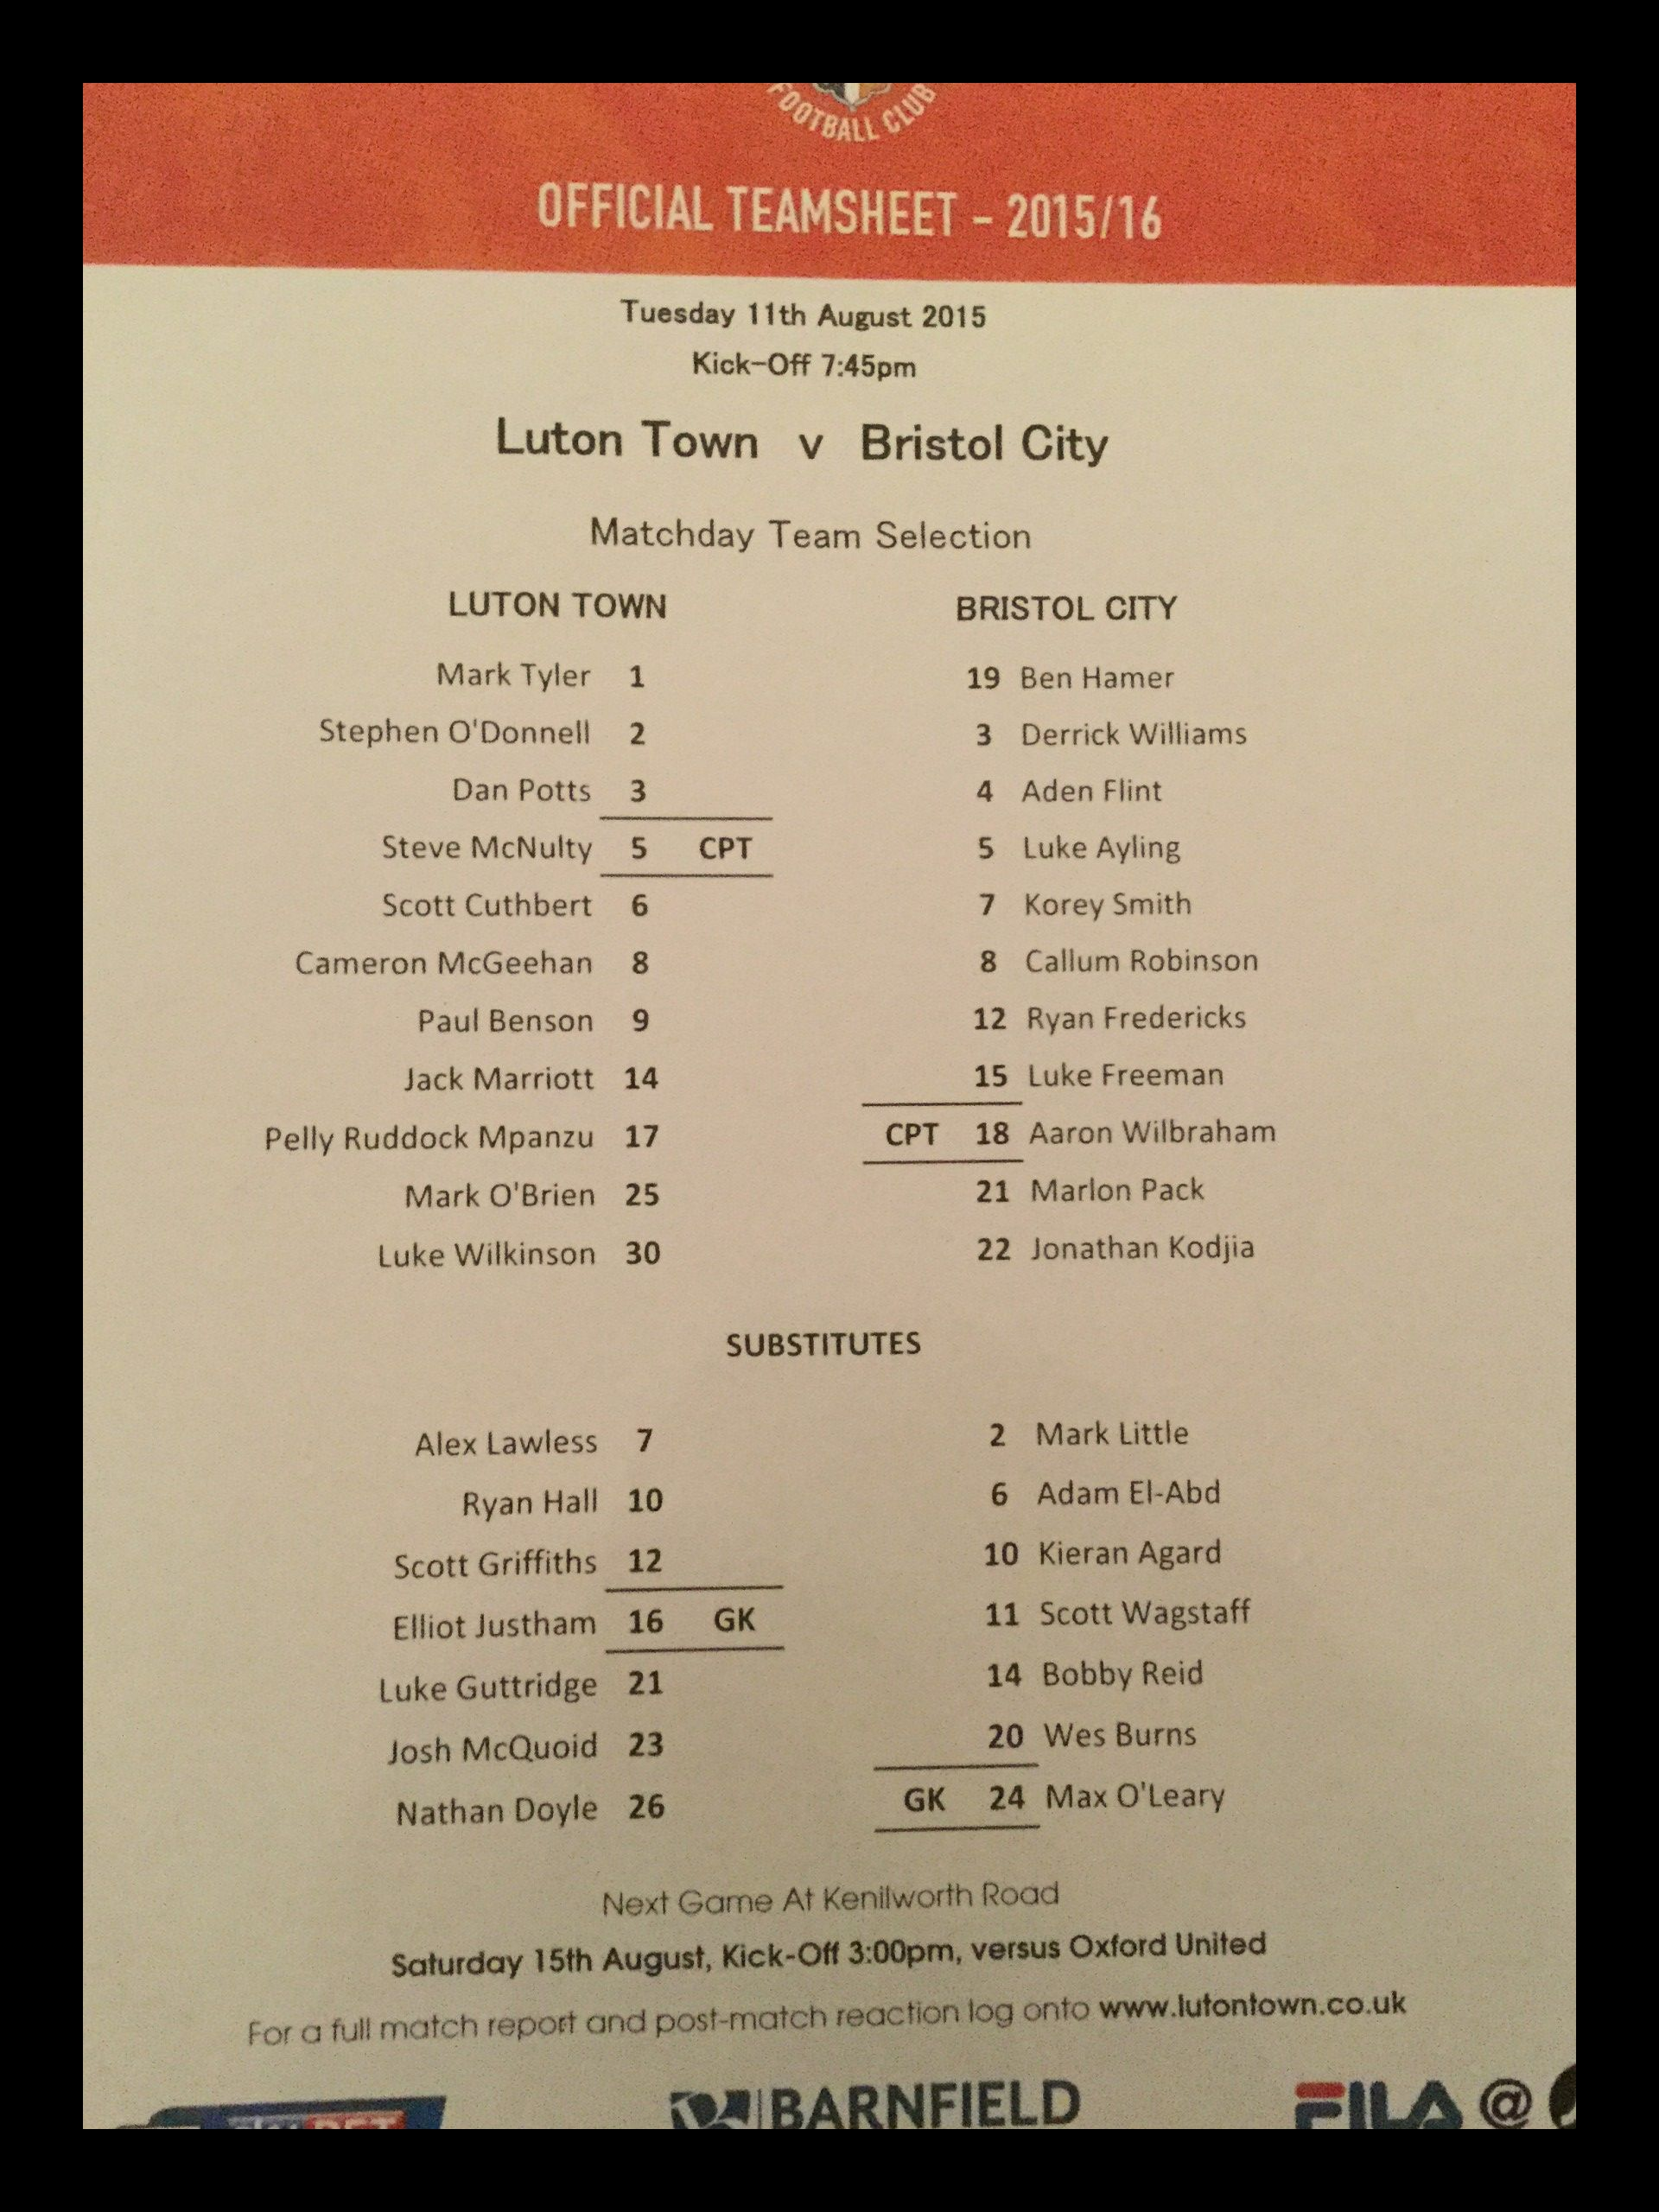 Luton Town v Bristol City 11-08-2015 Team Sheet